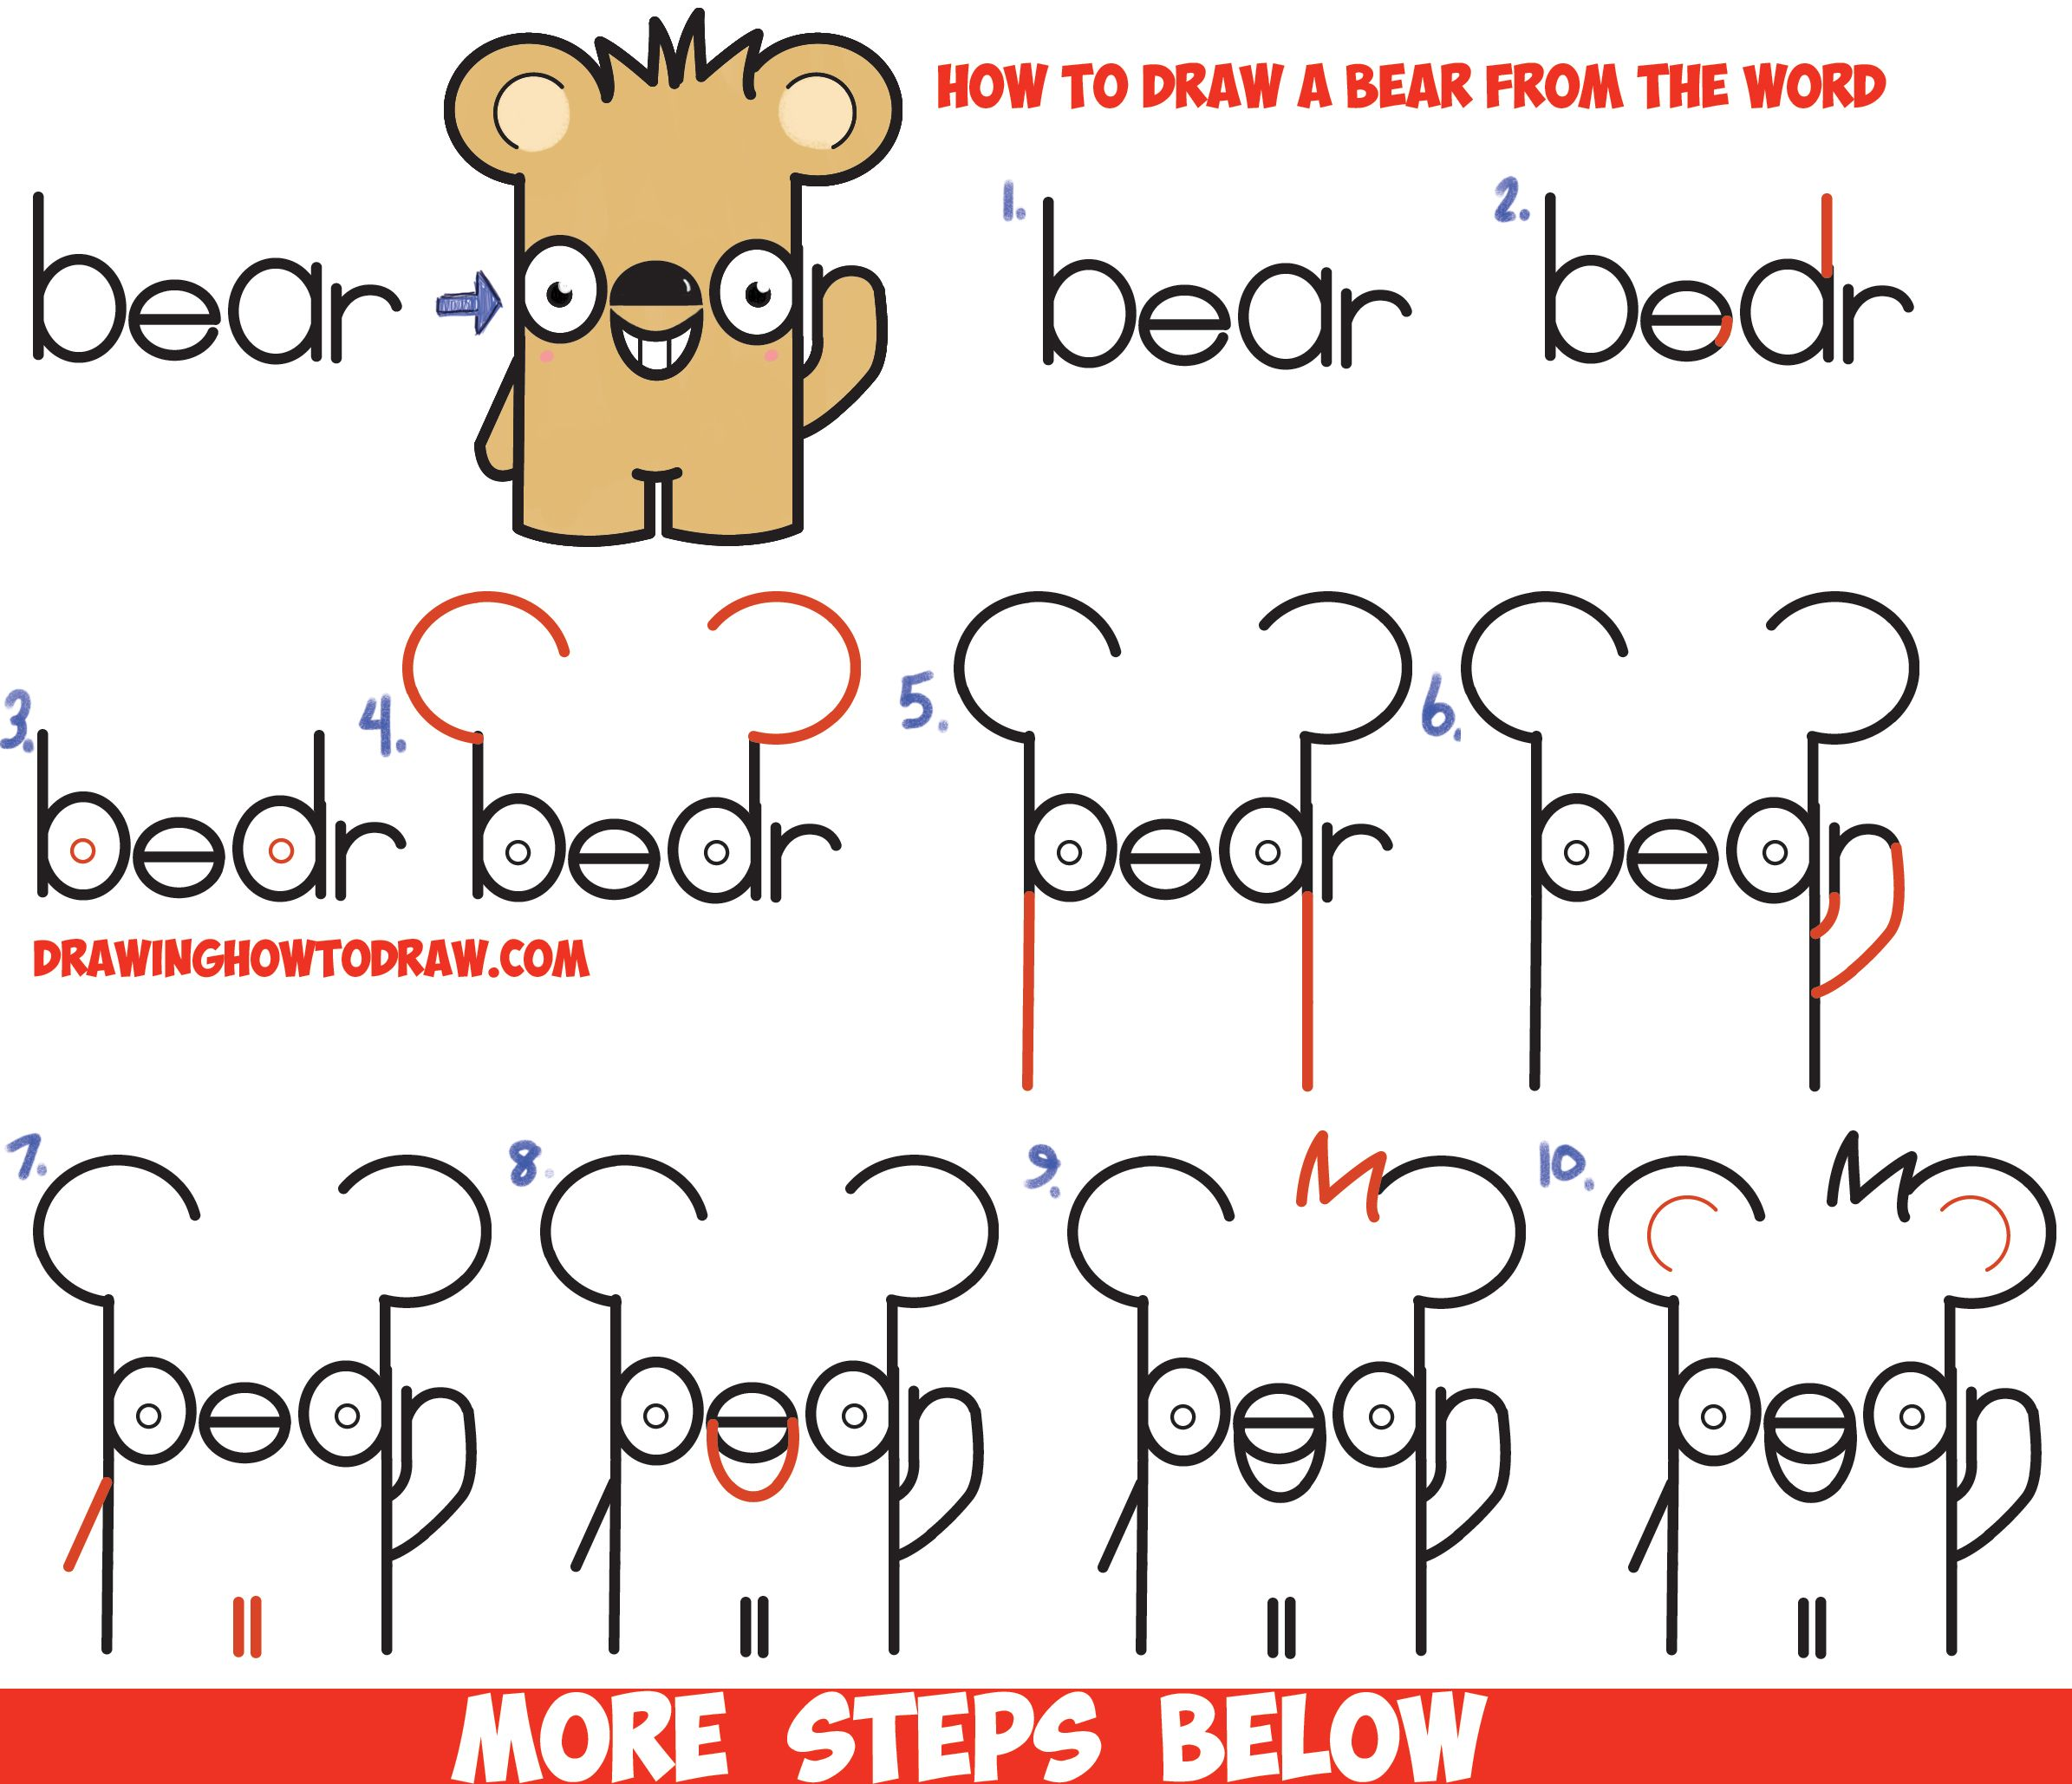 How To Draw Cute Cartoon Kawaii Bear From The Word Bear Easy Step By Step Drawing Tutorial For Kids How To Draw Step By Step Drawing Tutorials Word Drawings Drawing